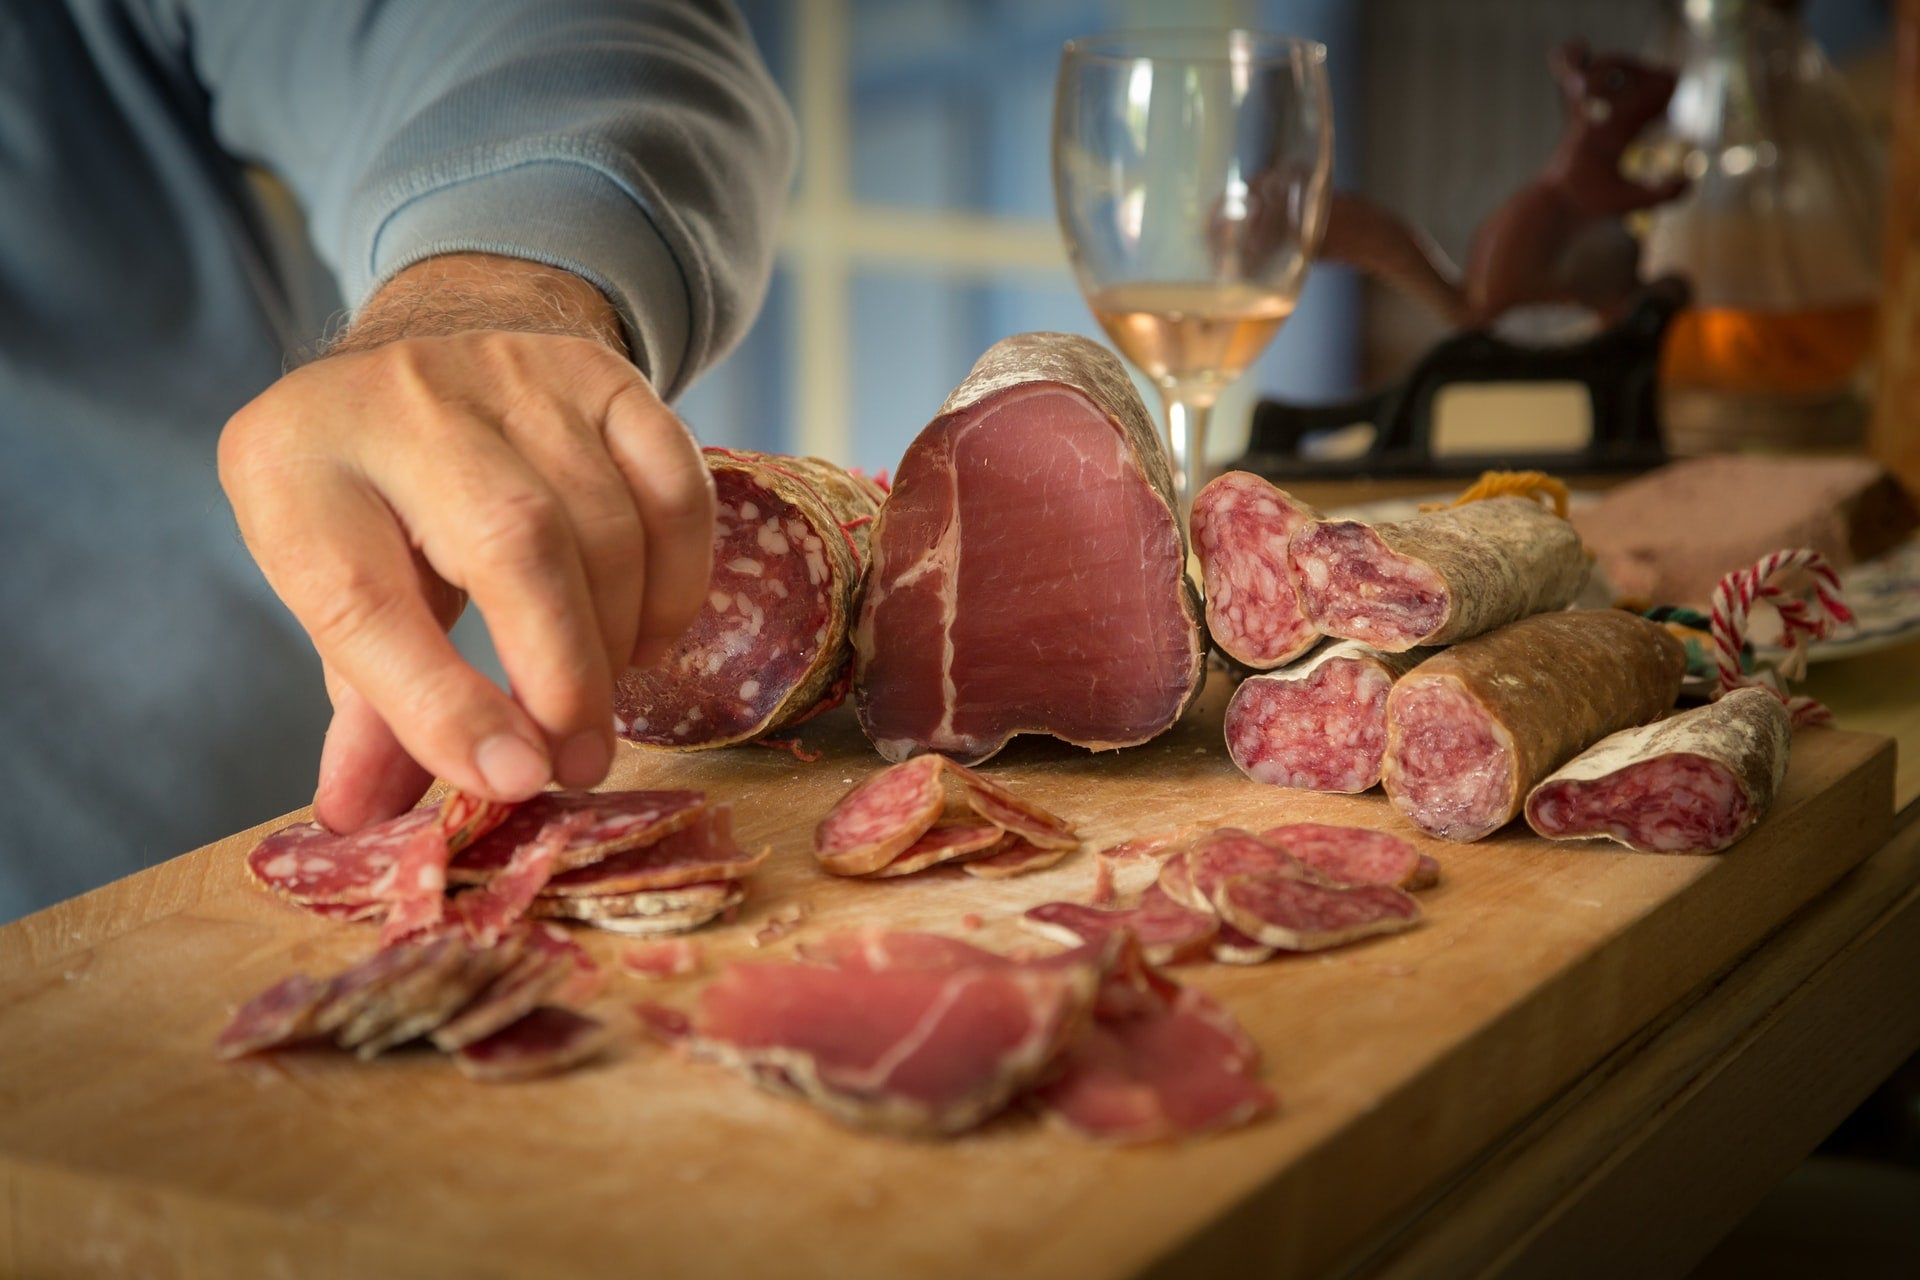 Whisky and Charcuterie Pairing: A Match Made in Food Heaven